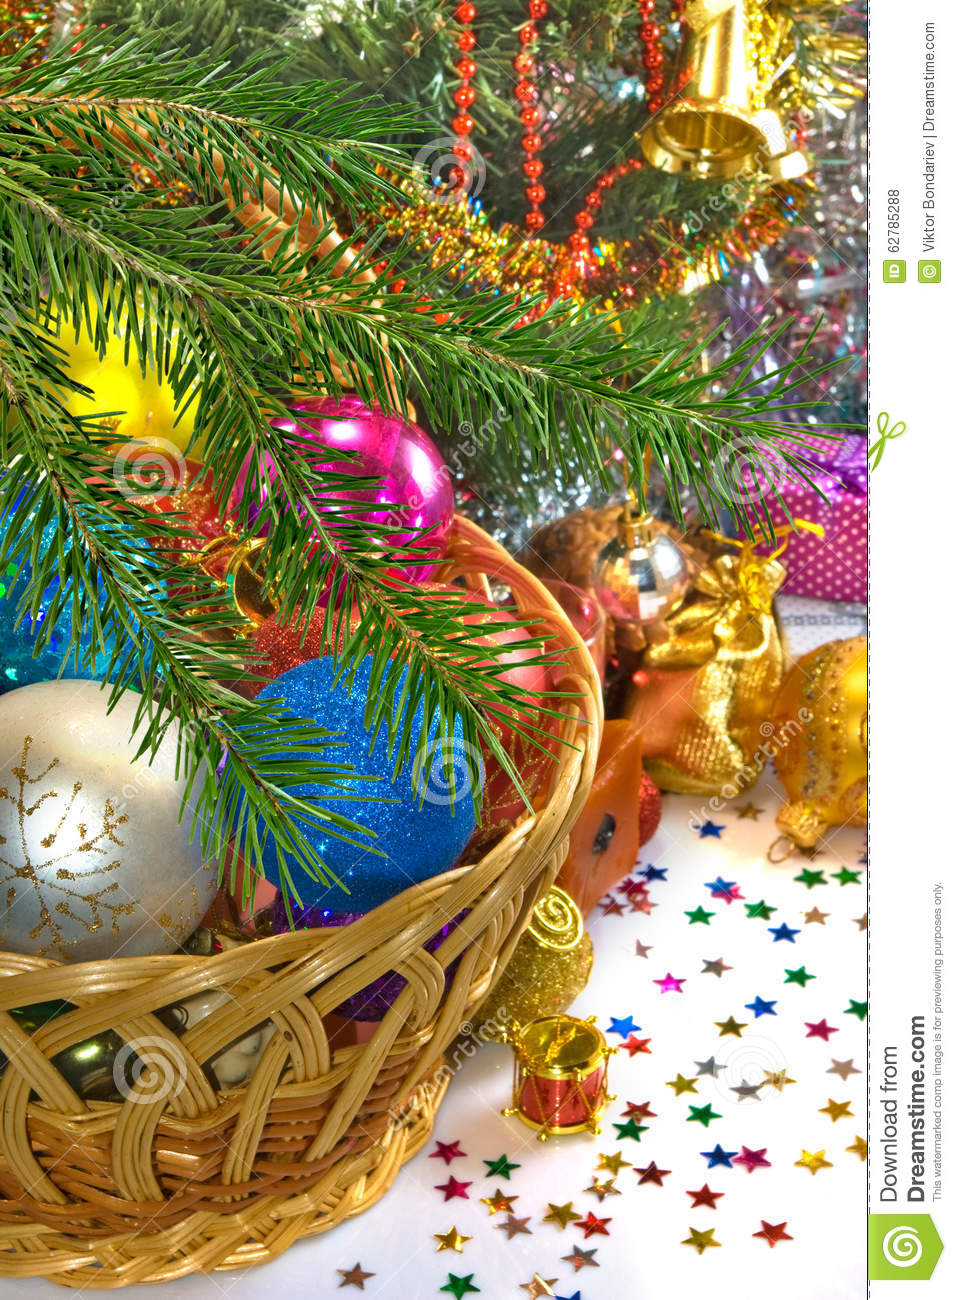 Different Image Of Beautiful Christmas Decorations And